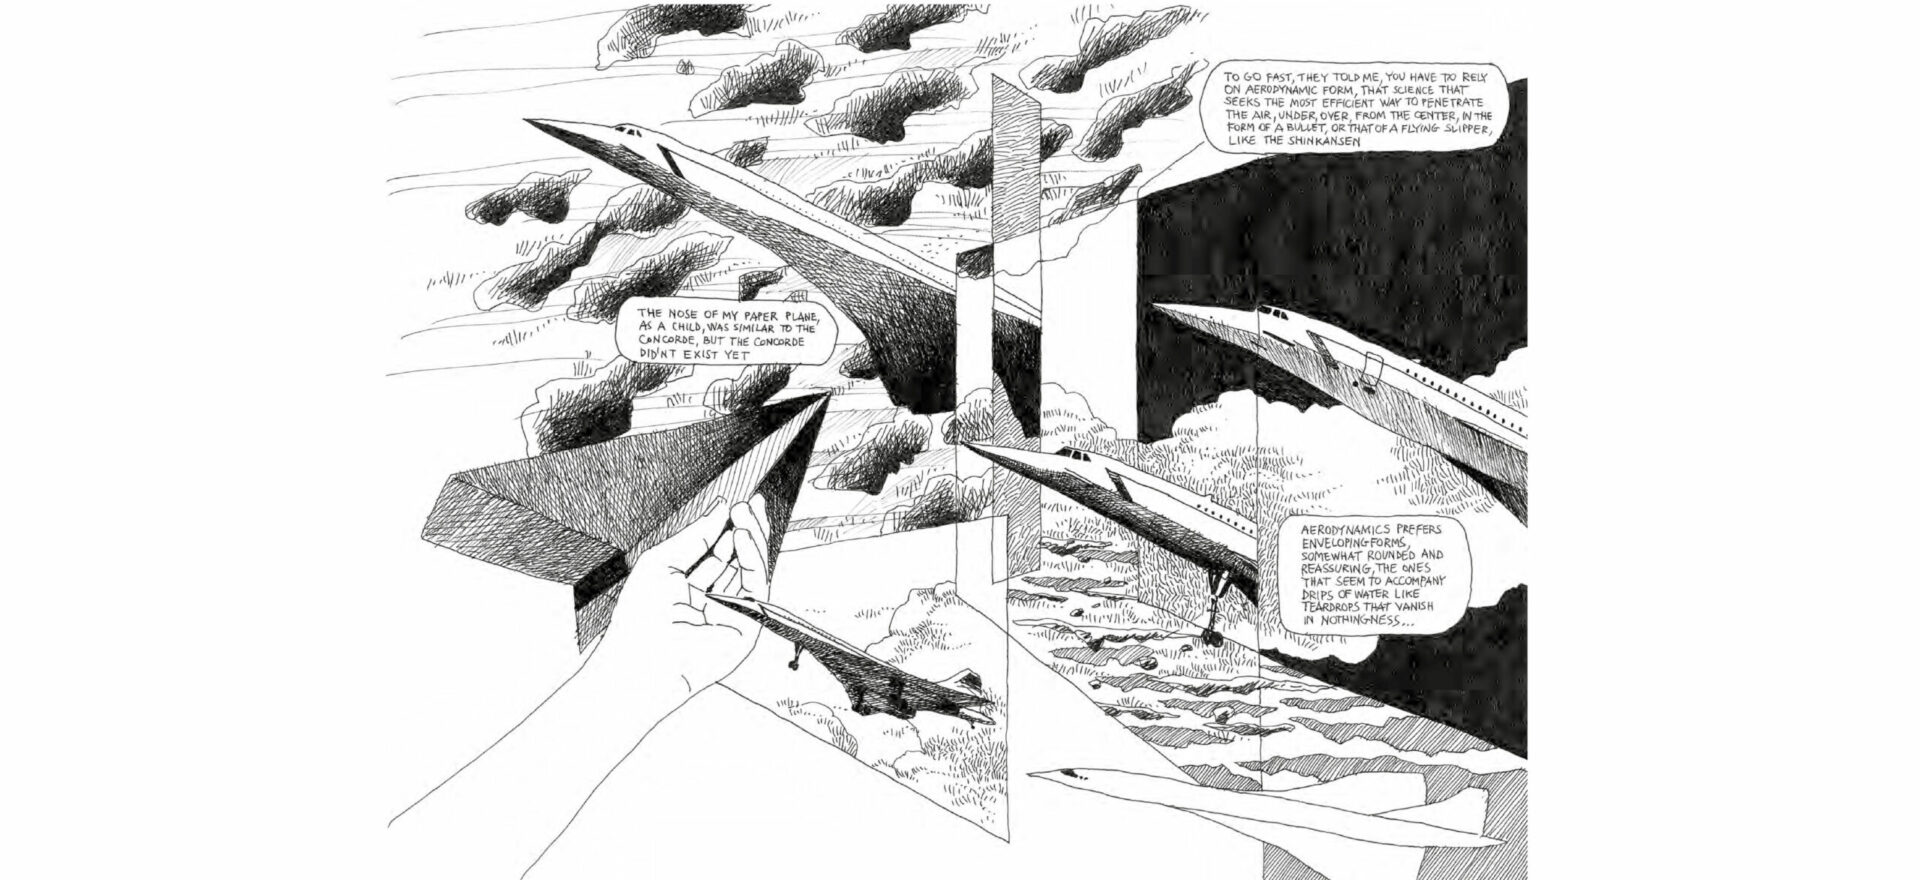 Samotraccia Art Drawing by Mario Trimarchi for De Castelli, showing details related the forms, aerodynamics, and the Concorde Airplane in coparisson with the a paper plane of childhood.